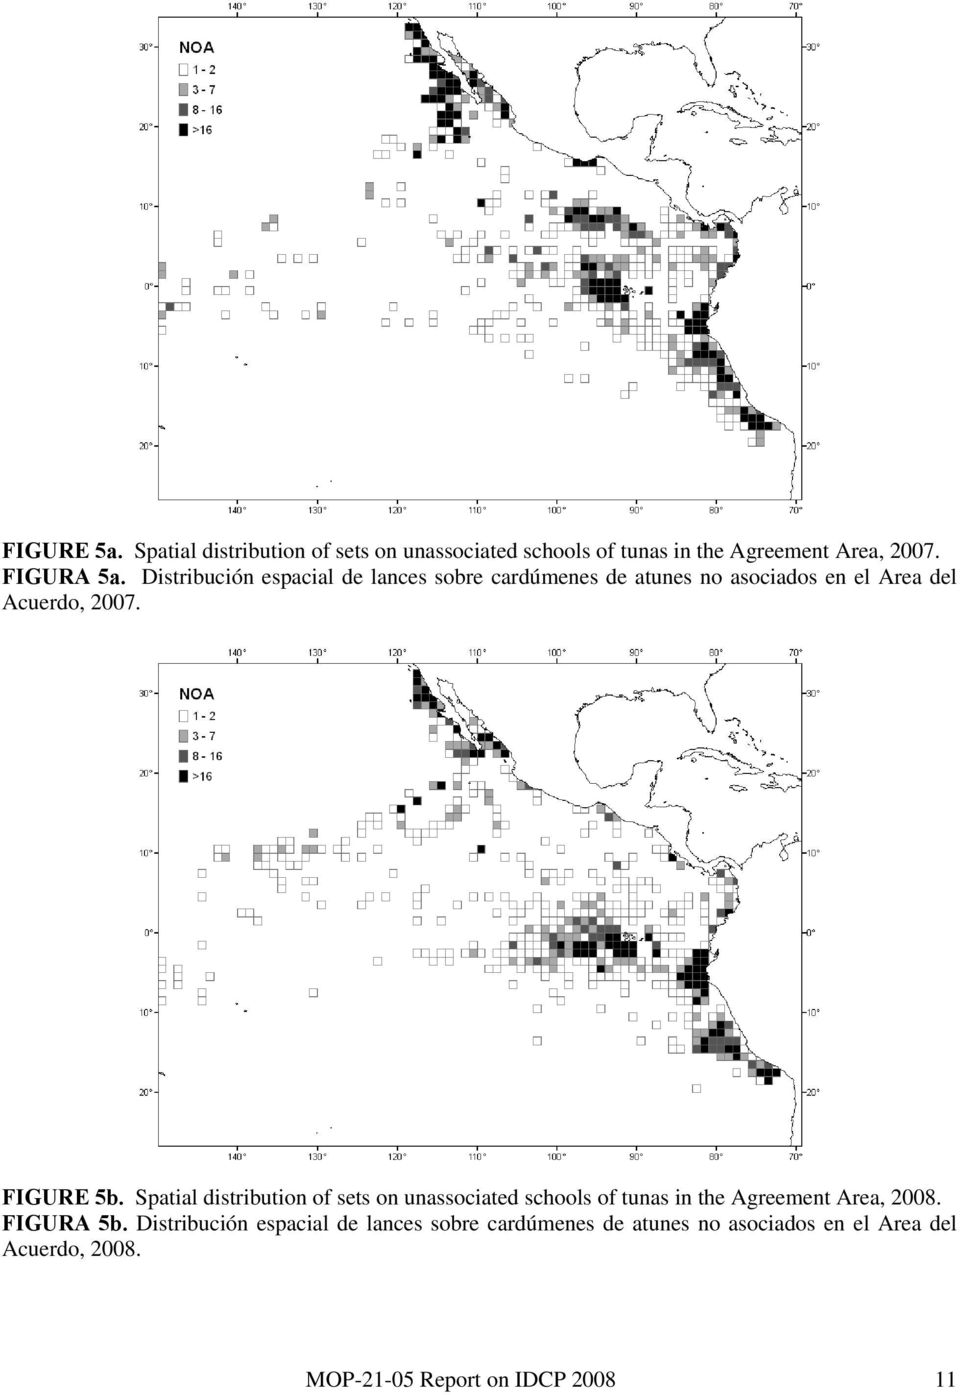 Spatial distribution of sets on unassociated schools of tunas in the Agreement Area, 28. FIGURA 5b.